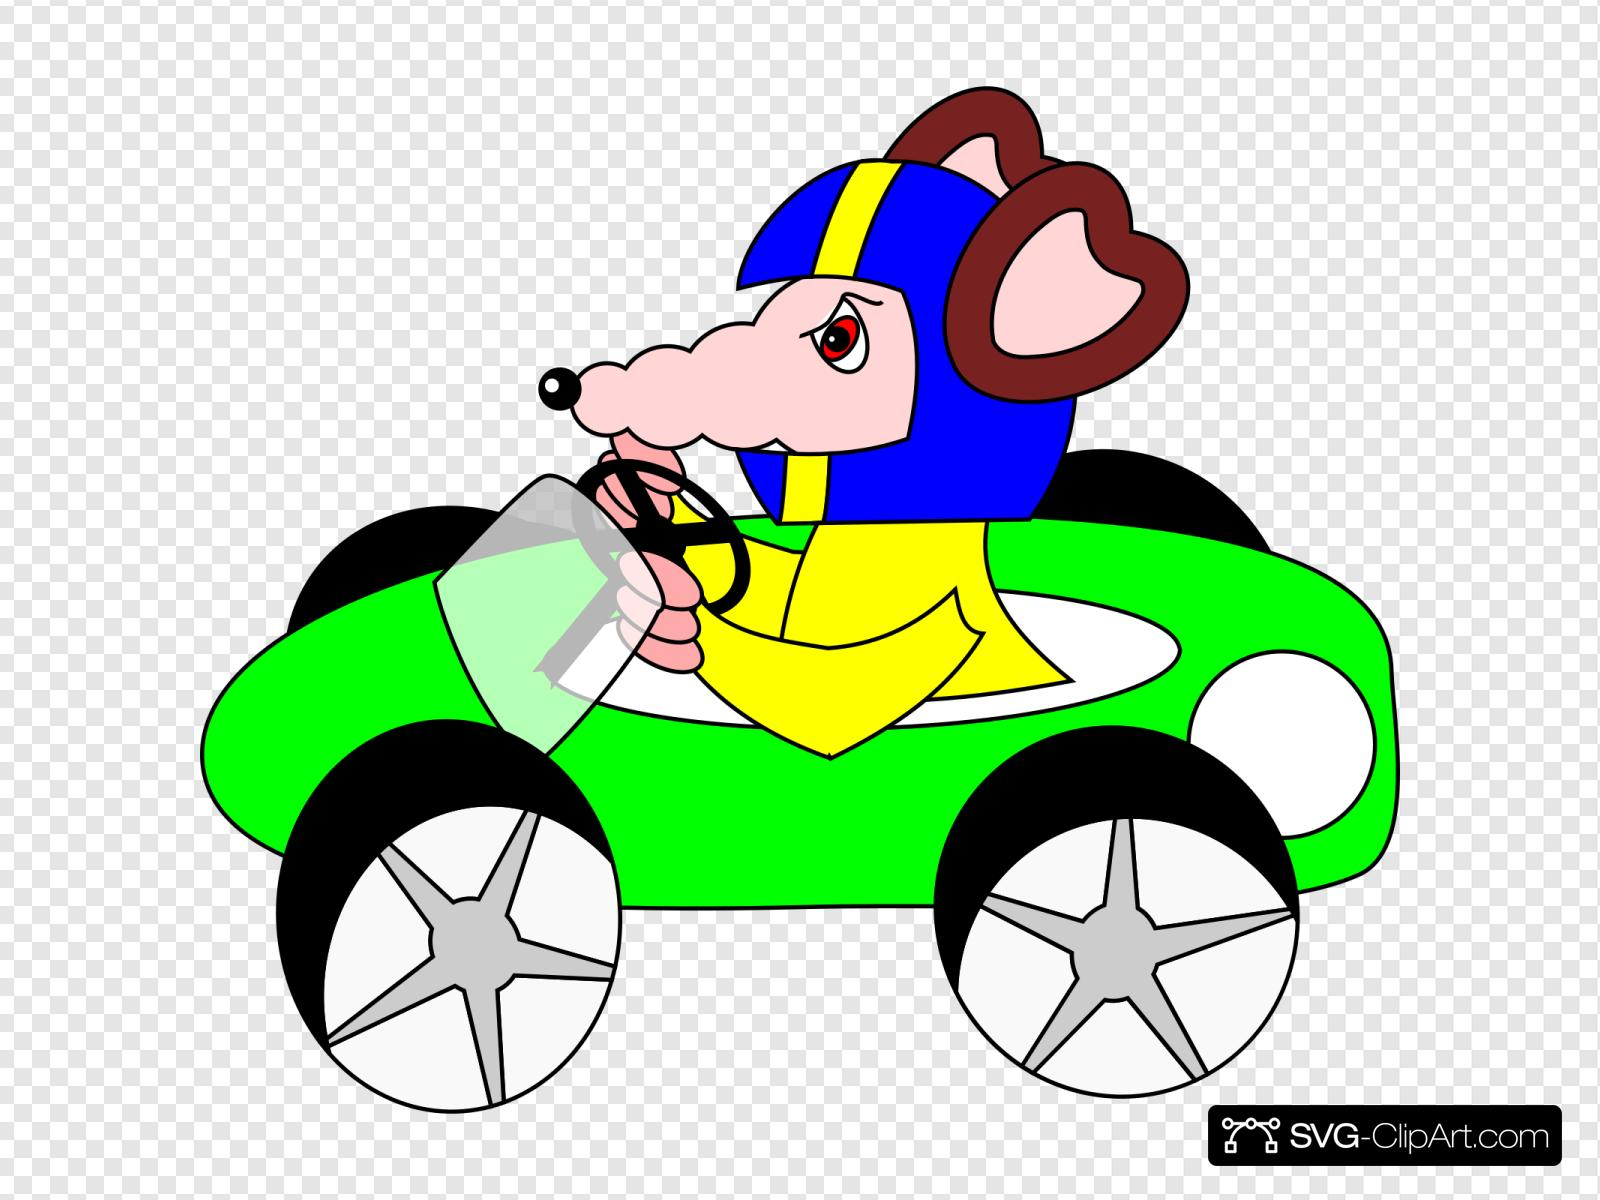 Ratracer Clip Art Icon And SVG SVG Clipart